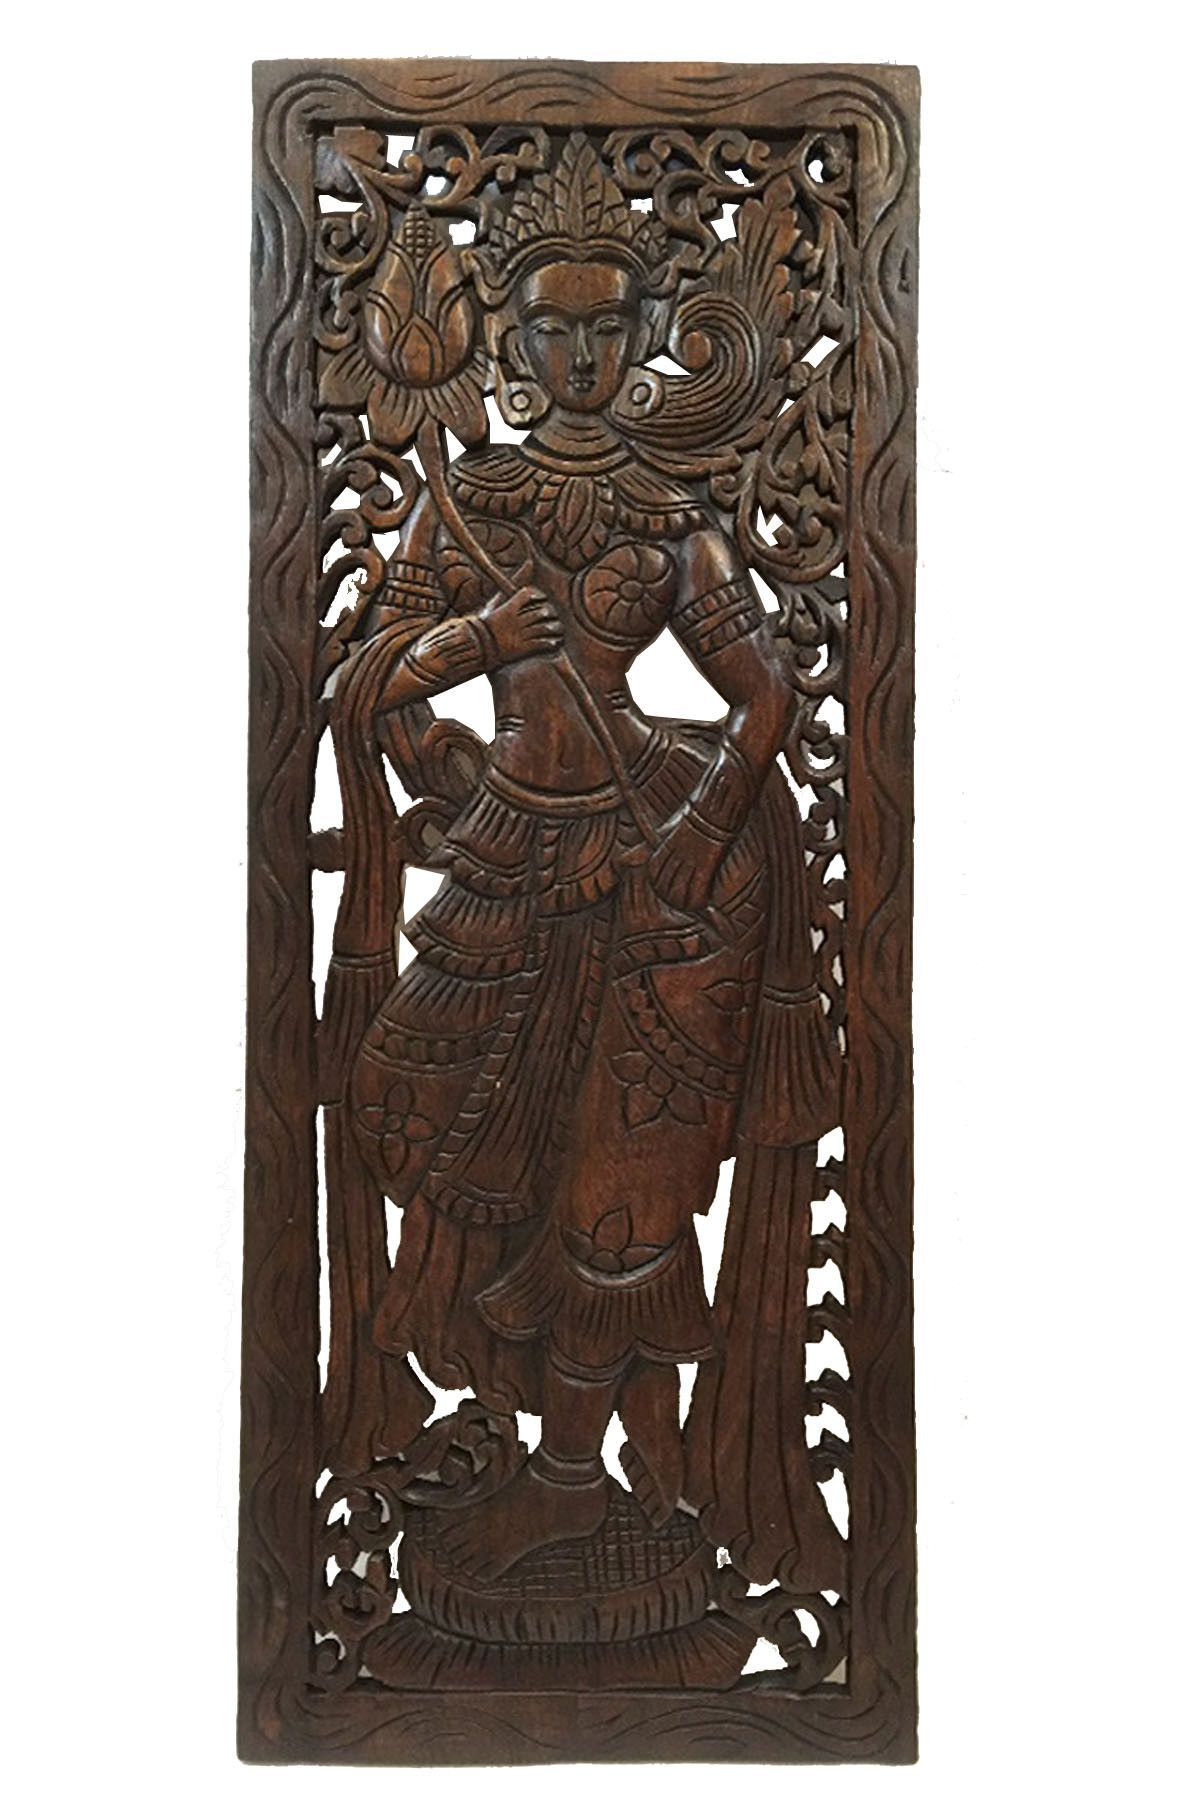 Carved Wood Wall Art Decor Inspiration Wood Carved Wall Artlarge Carved Wood Panelthai Decorative Decorating Design